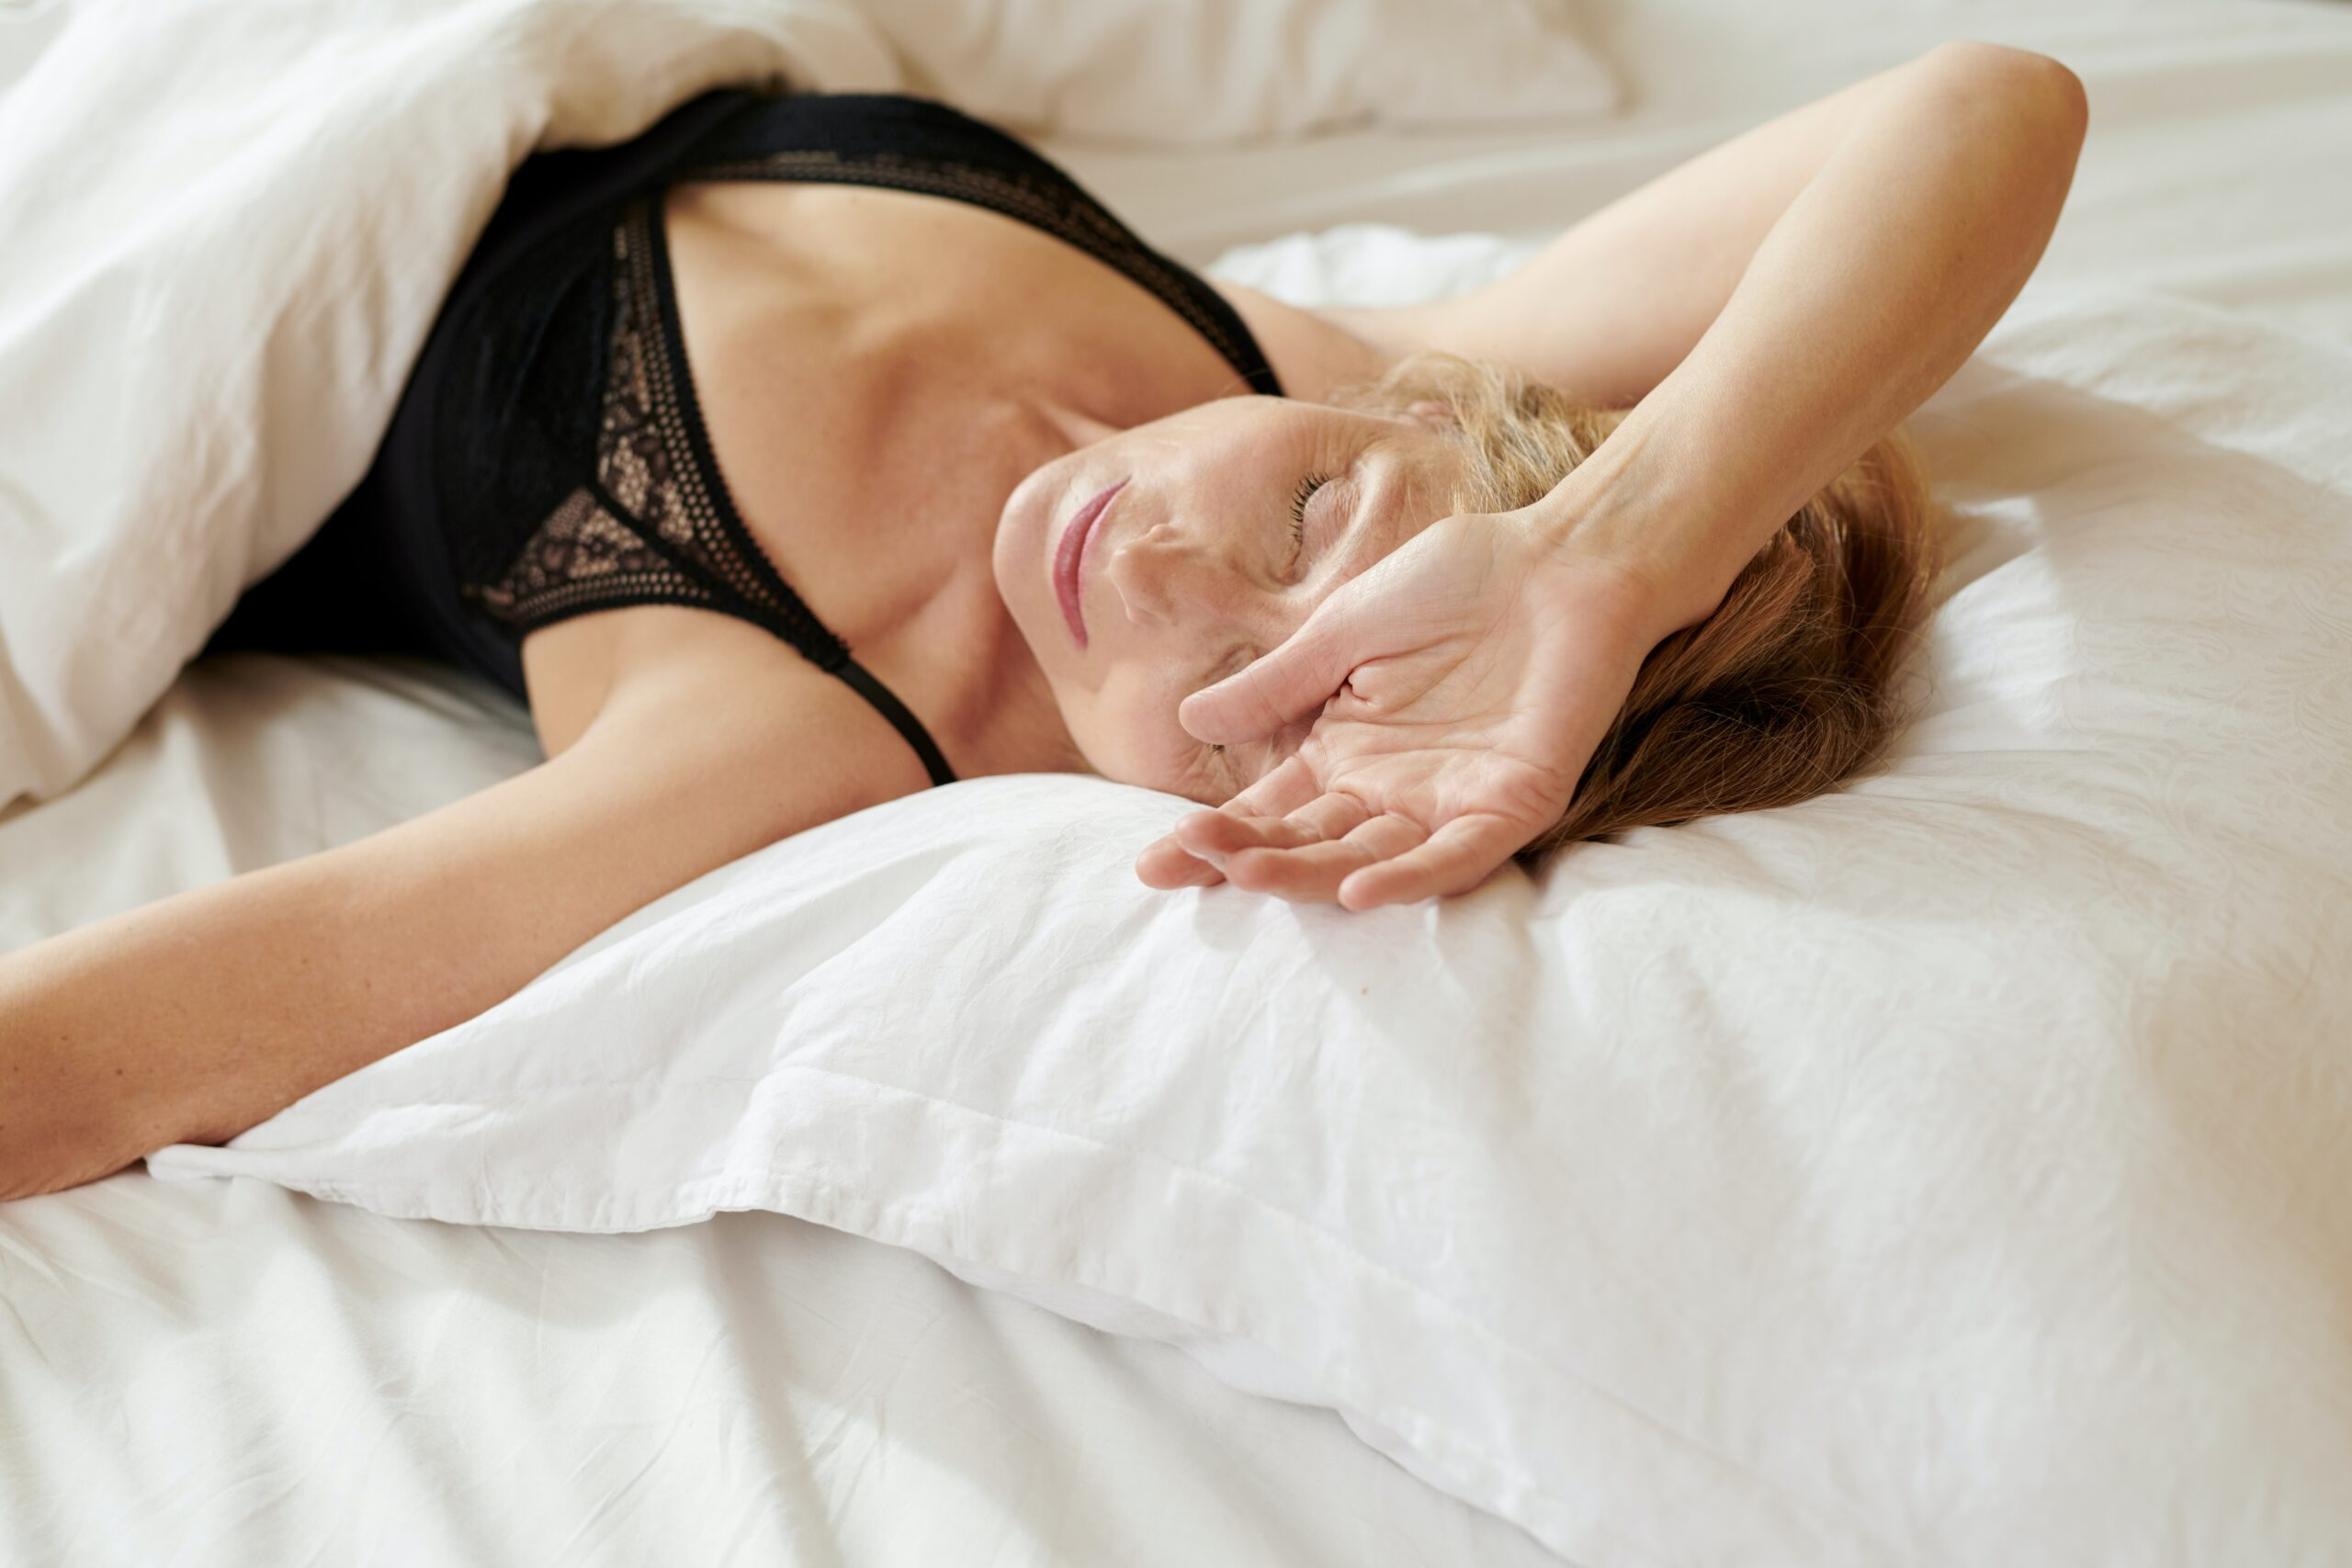 woman layin gin bed with just bra and arm over her face